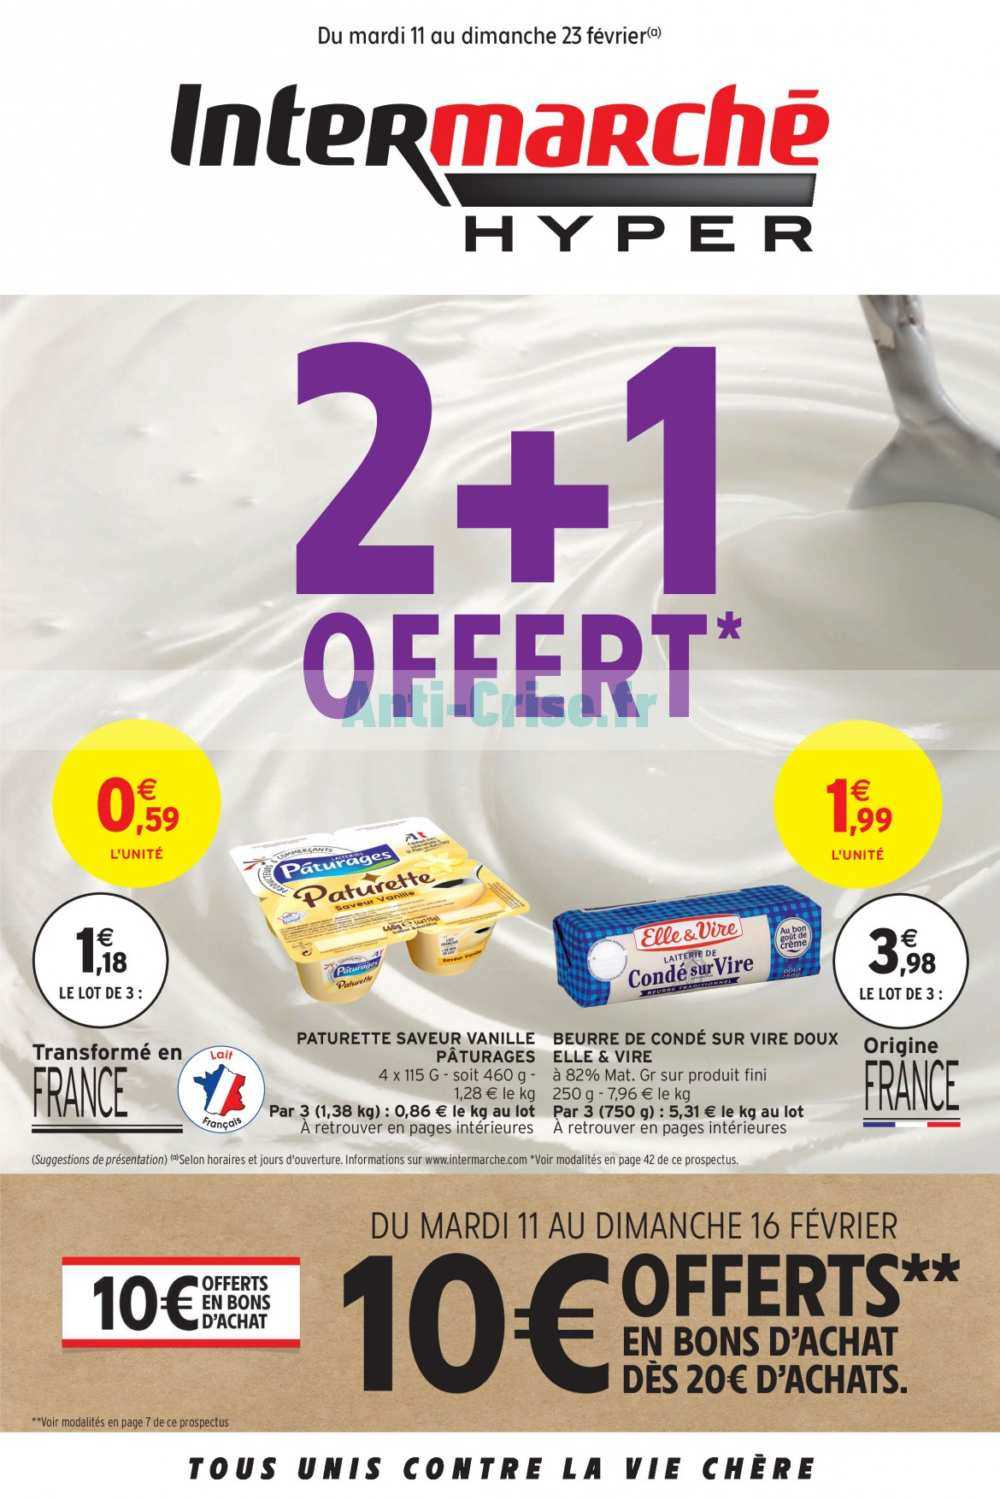 Catalogue Intermarché du 11 au 23 février 2020 (Version Hyper)